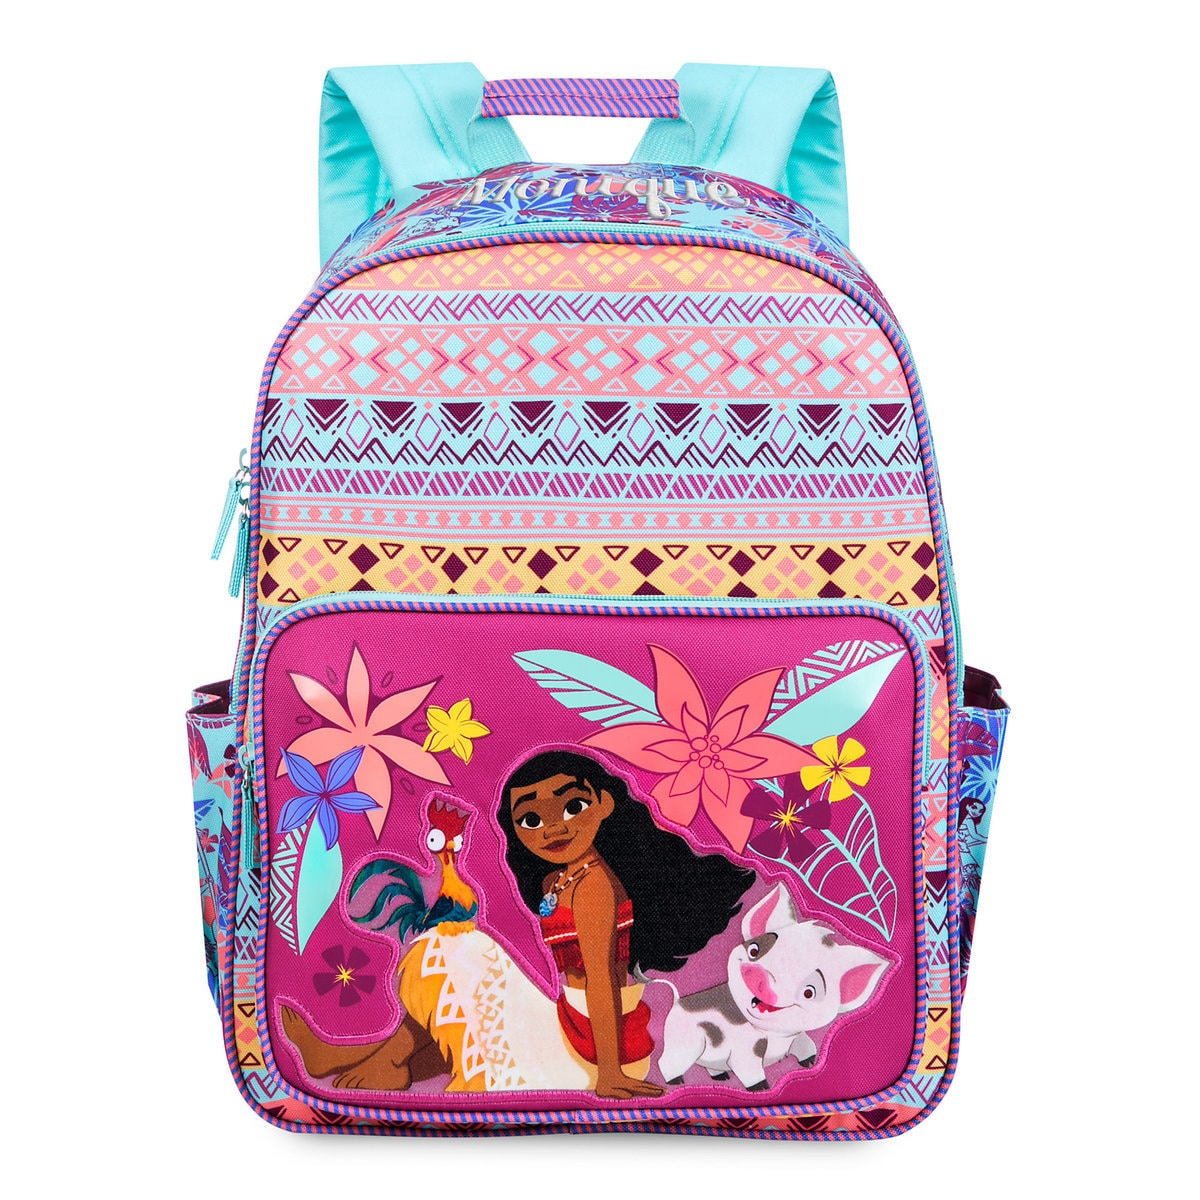 Product Image of Moana Backpack - Personalized # 1